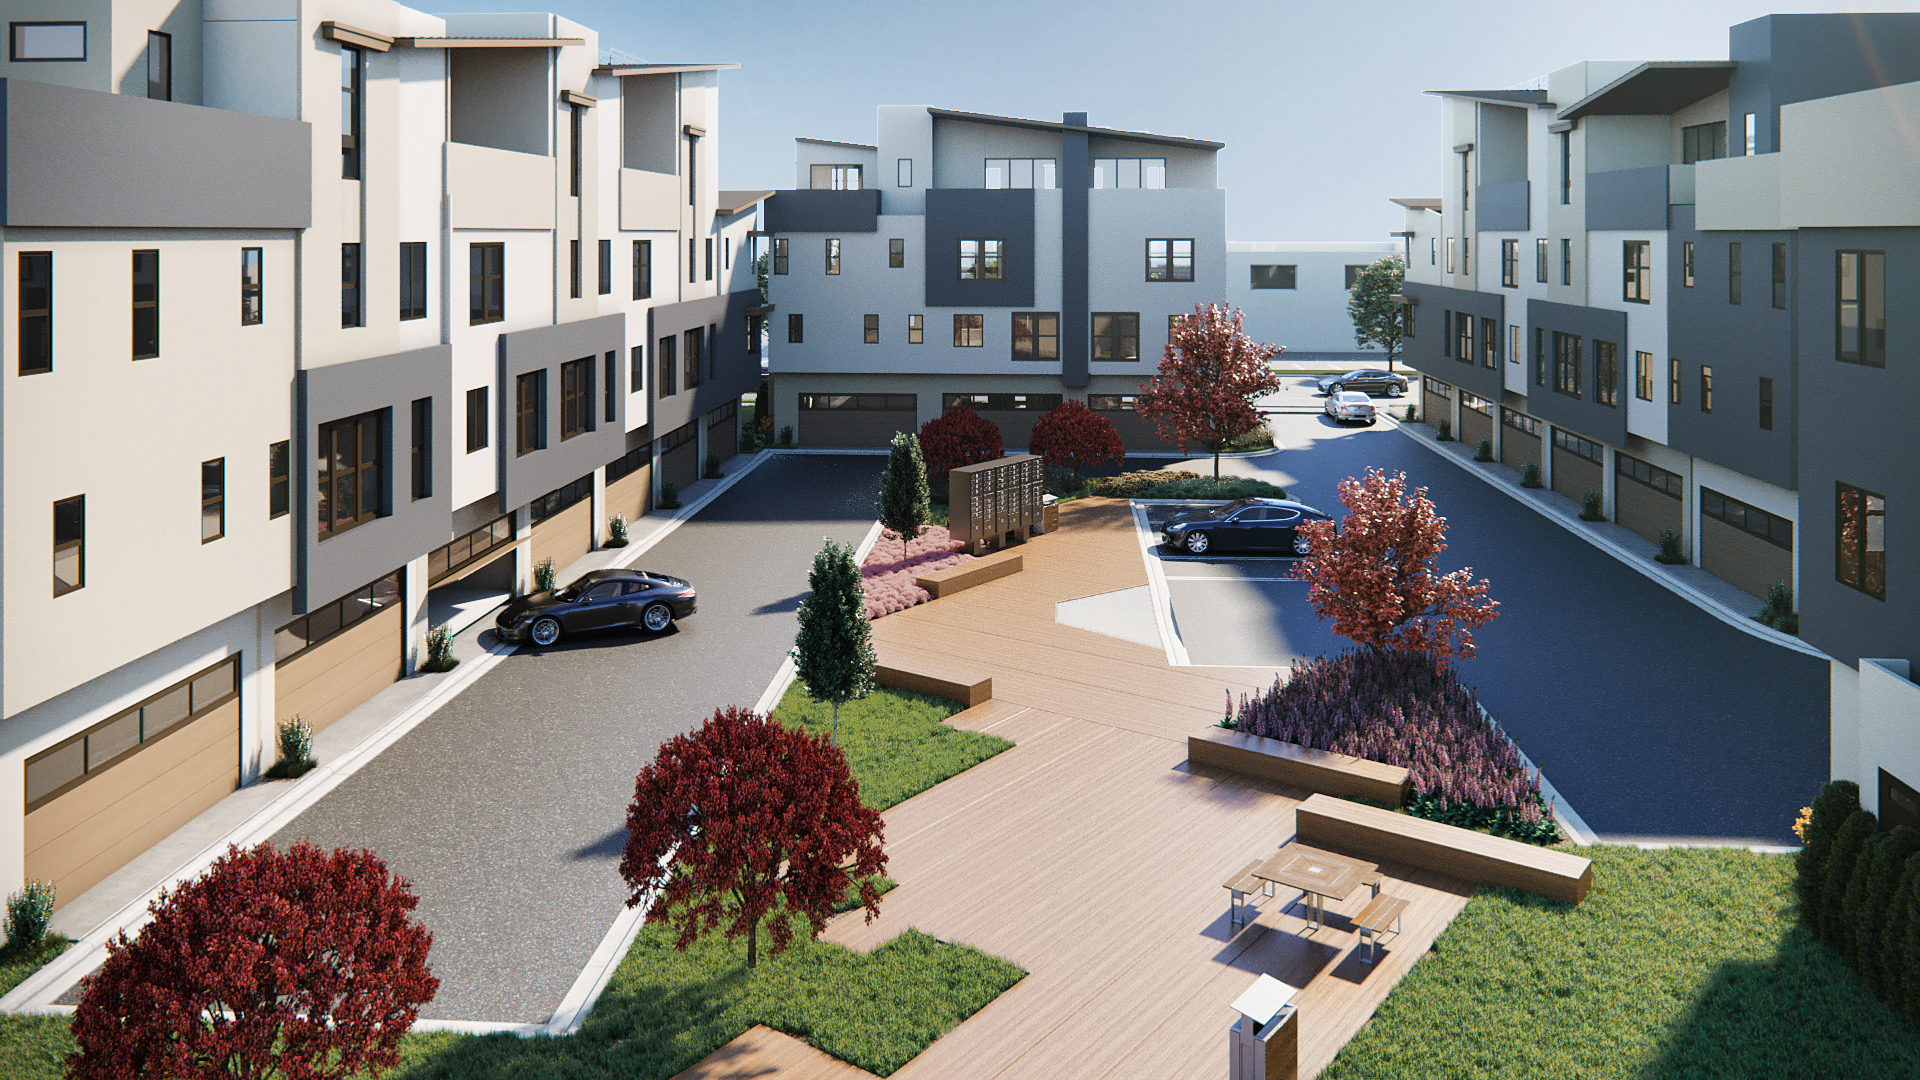 40 Luxury Townhomes Coming Soon to Santa Clara